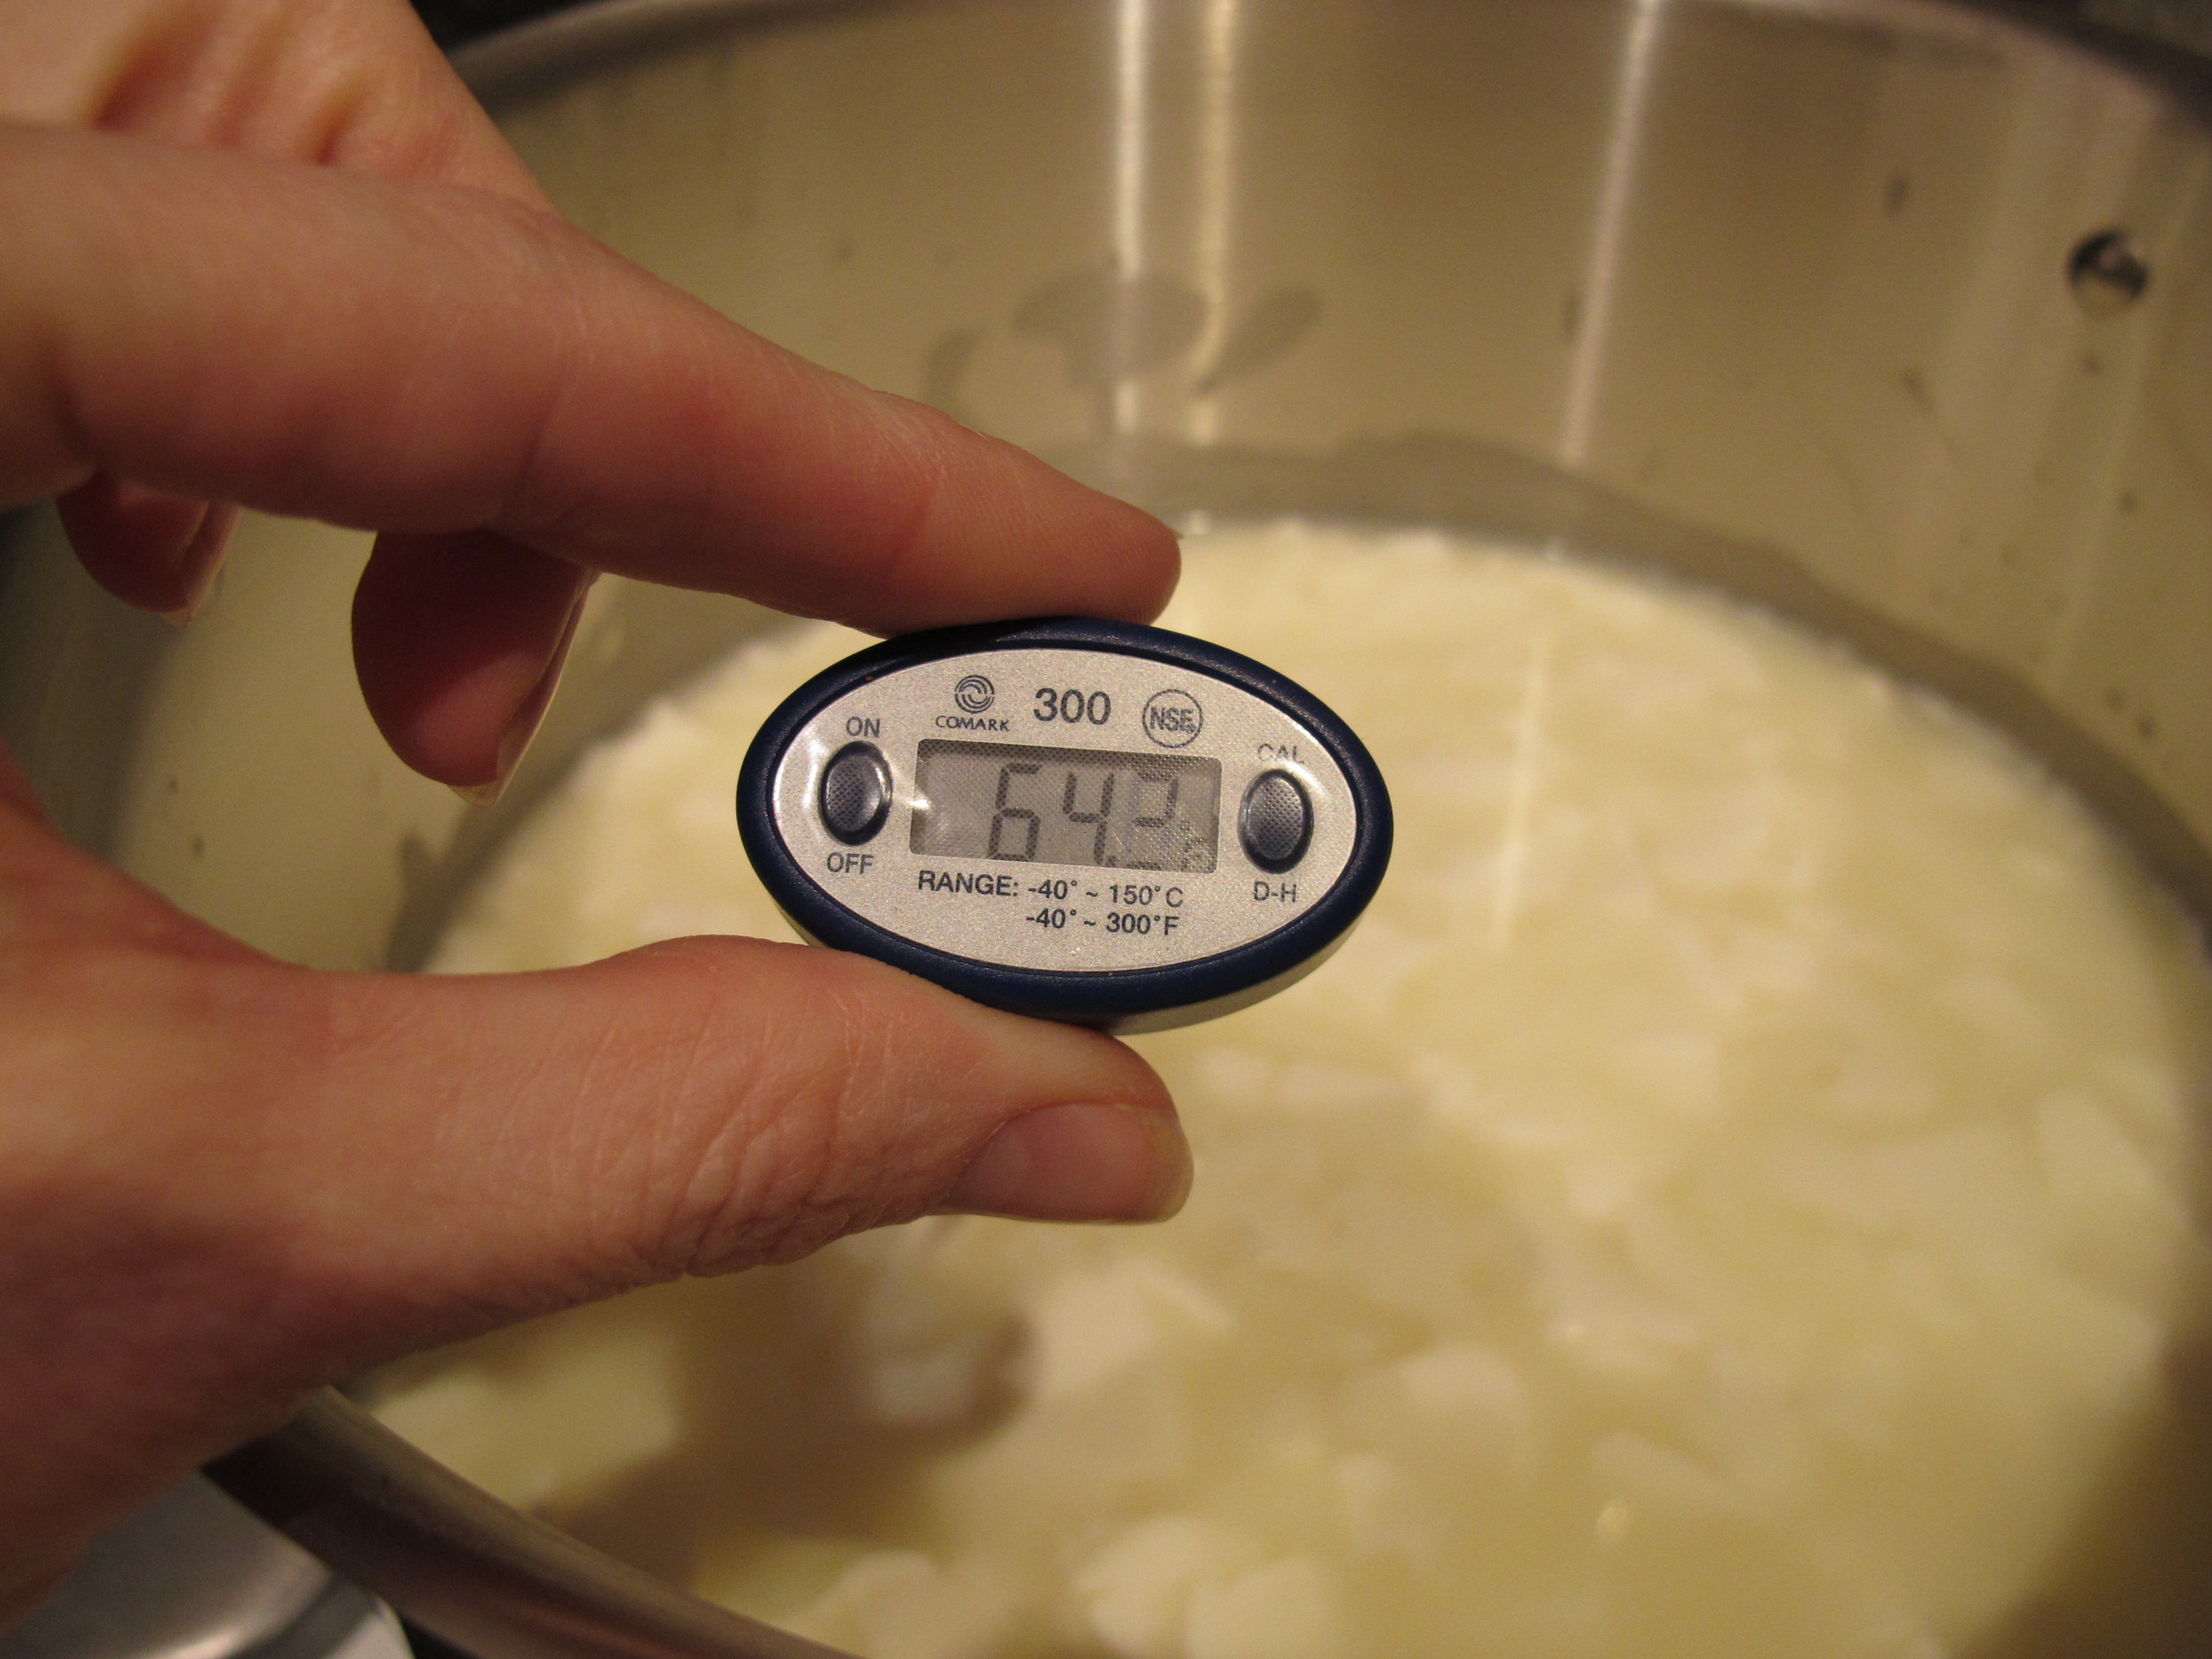 Don't be afraid of the consistency of the milk in the pot as this was actually taken from my cottage cheese making, but I'm getting ahead of myself